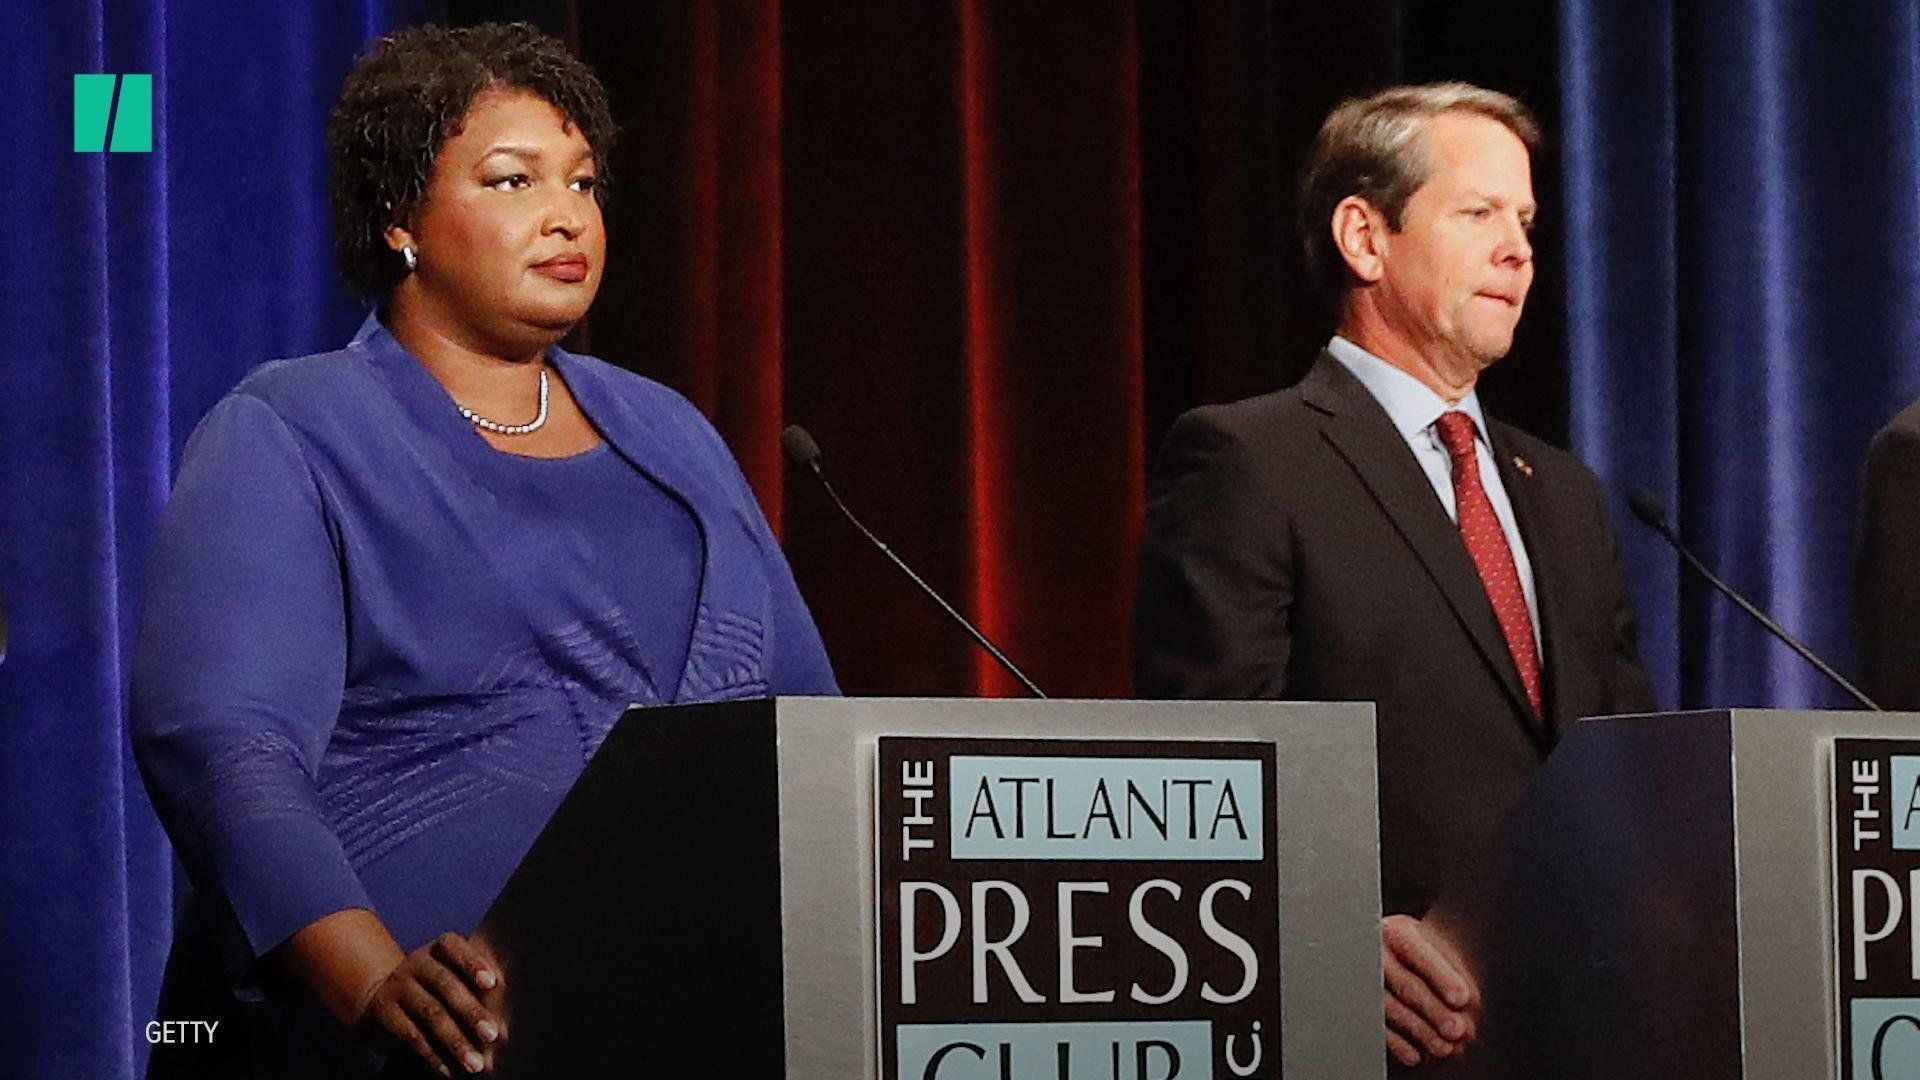 Racist Robocall Targets Stacey Abrams and Oprah Winfrey in Georgia